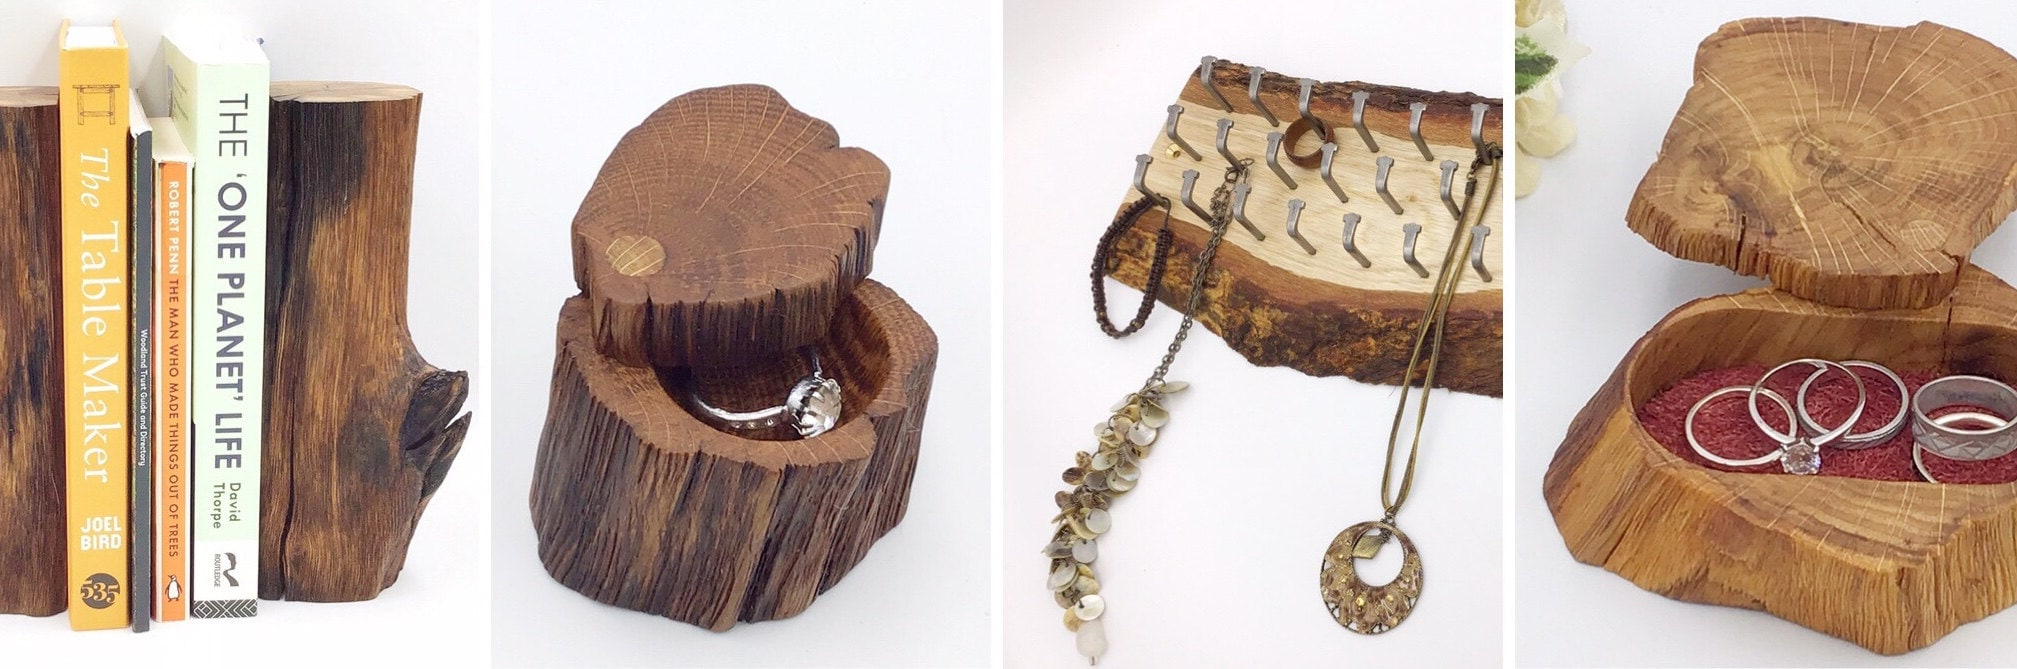 Our designs - inspired by nature from natural materials